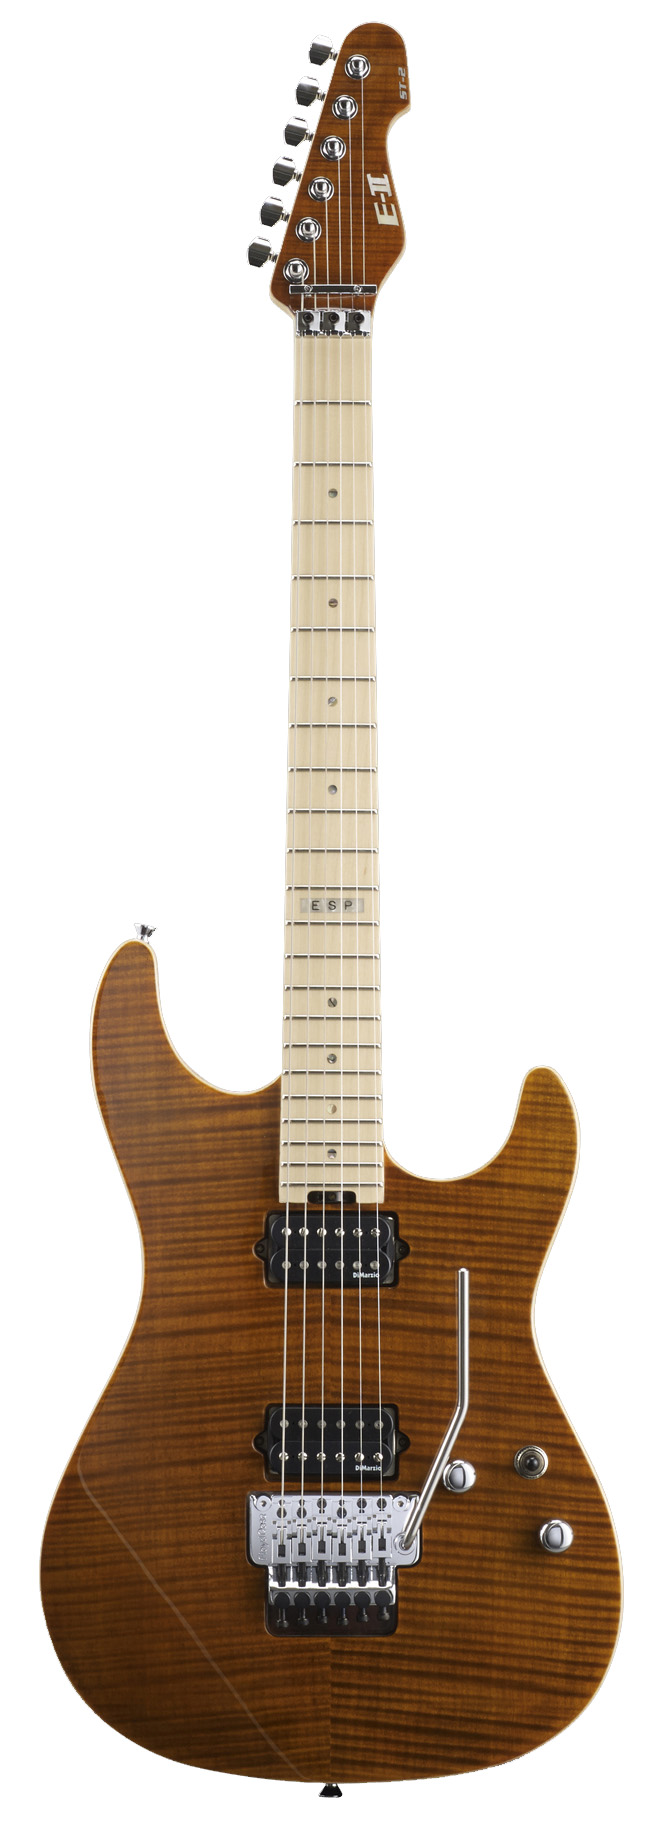 ESP ST-2 MAPLE TE E-II ST Series Electric Guitar with Flamed Top Tiger Eye Finish